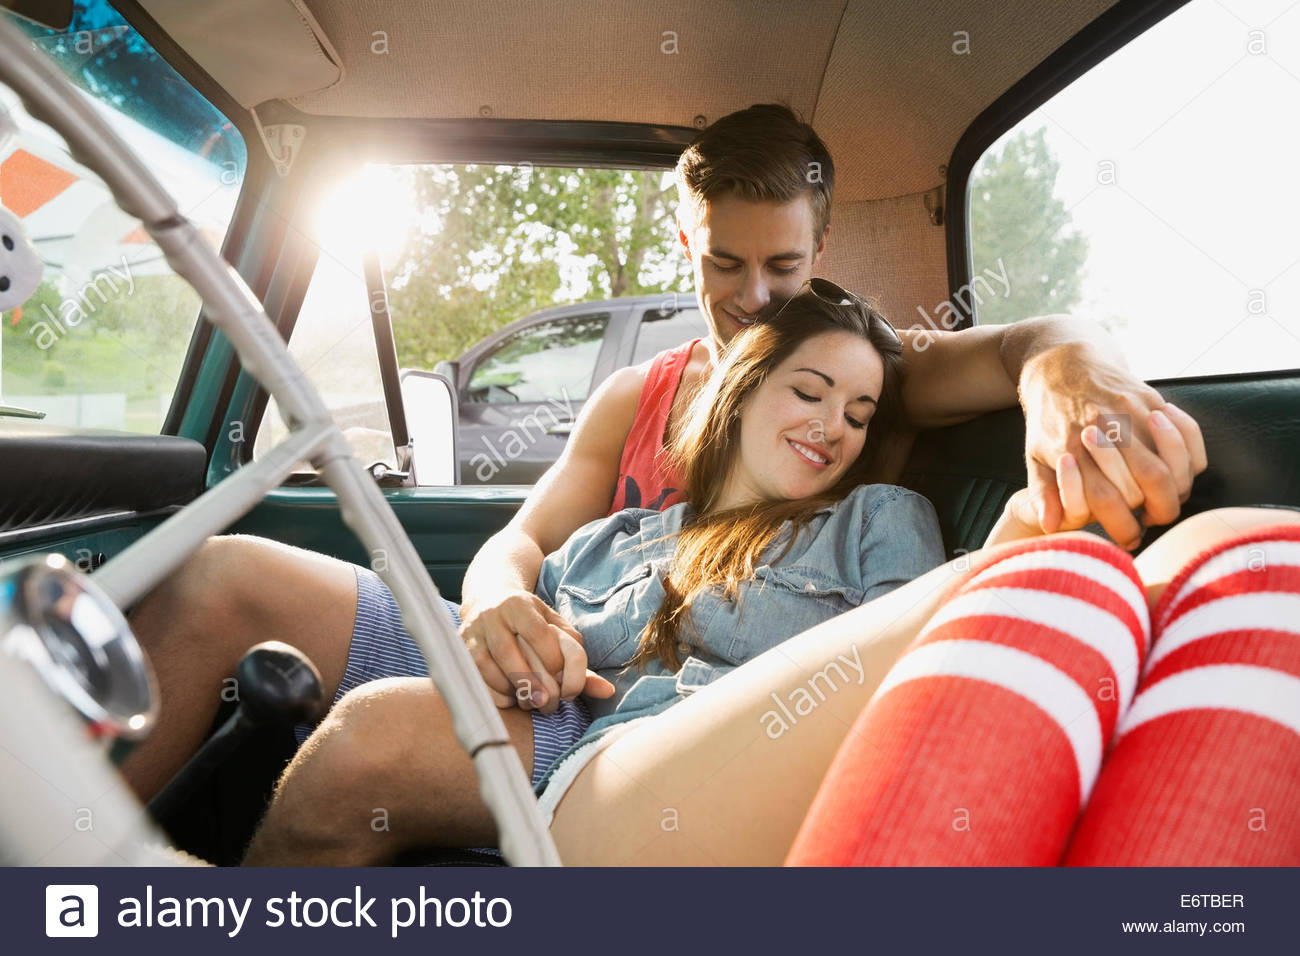 Couple relaxing together in truck Photo Stock